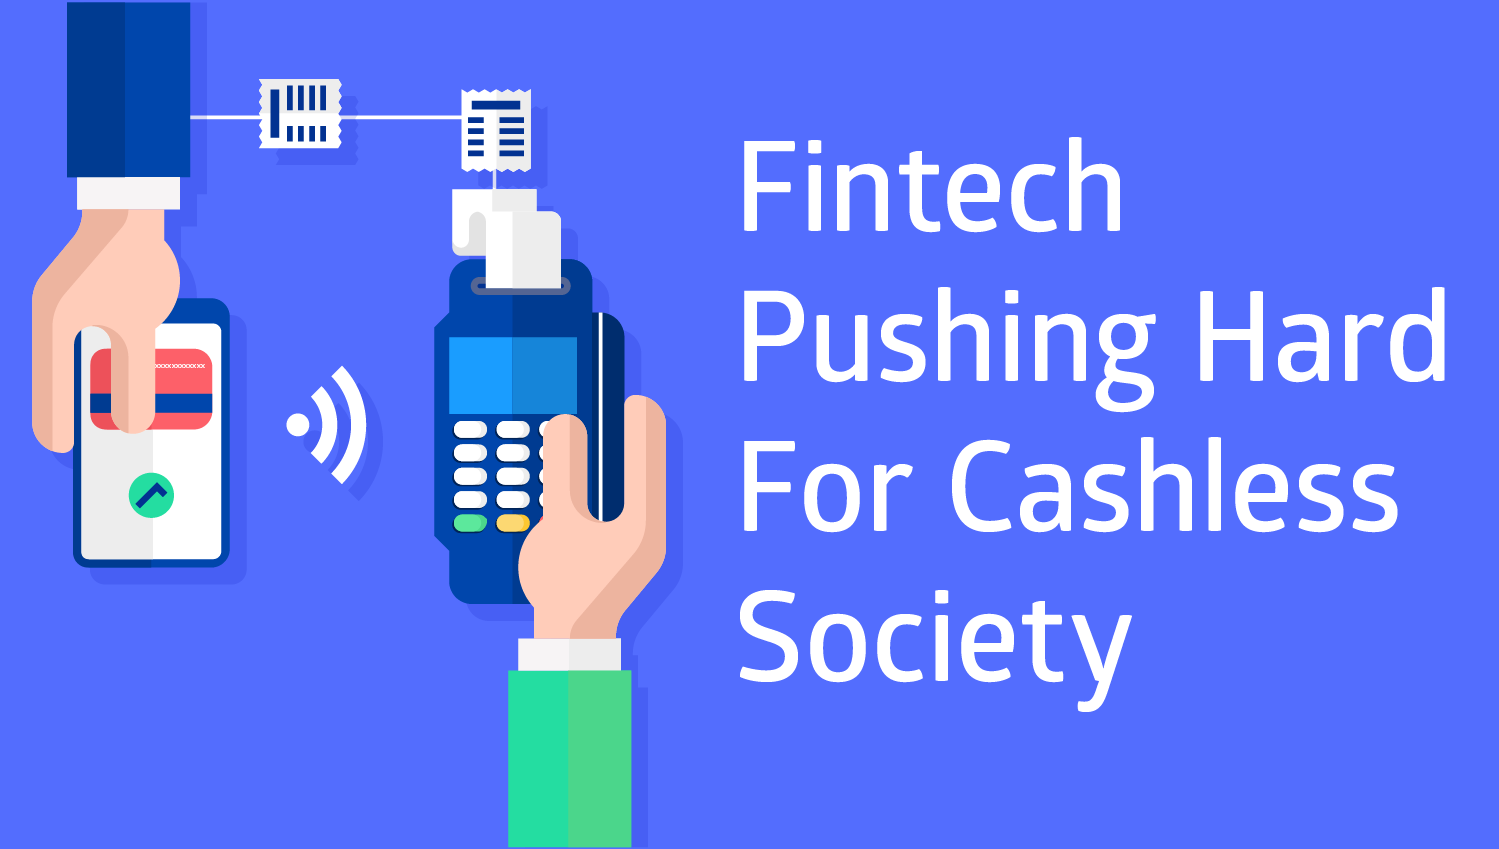 Idea Theorem - Fintech pushing hard for cashless society